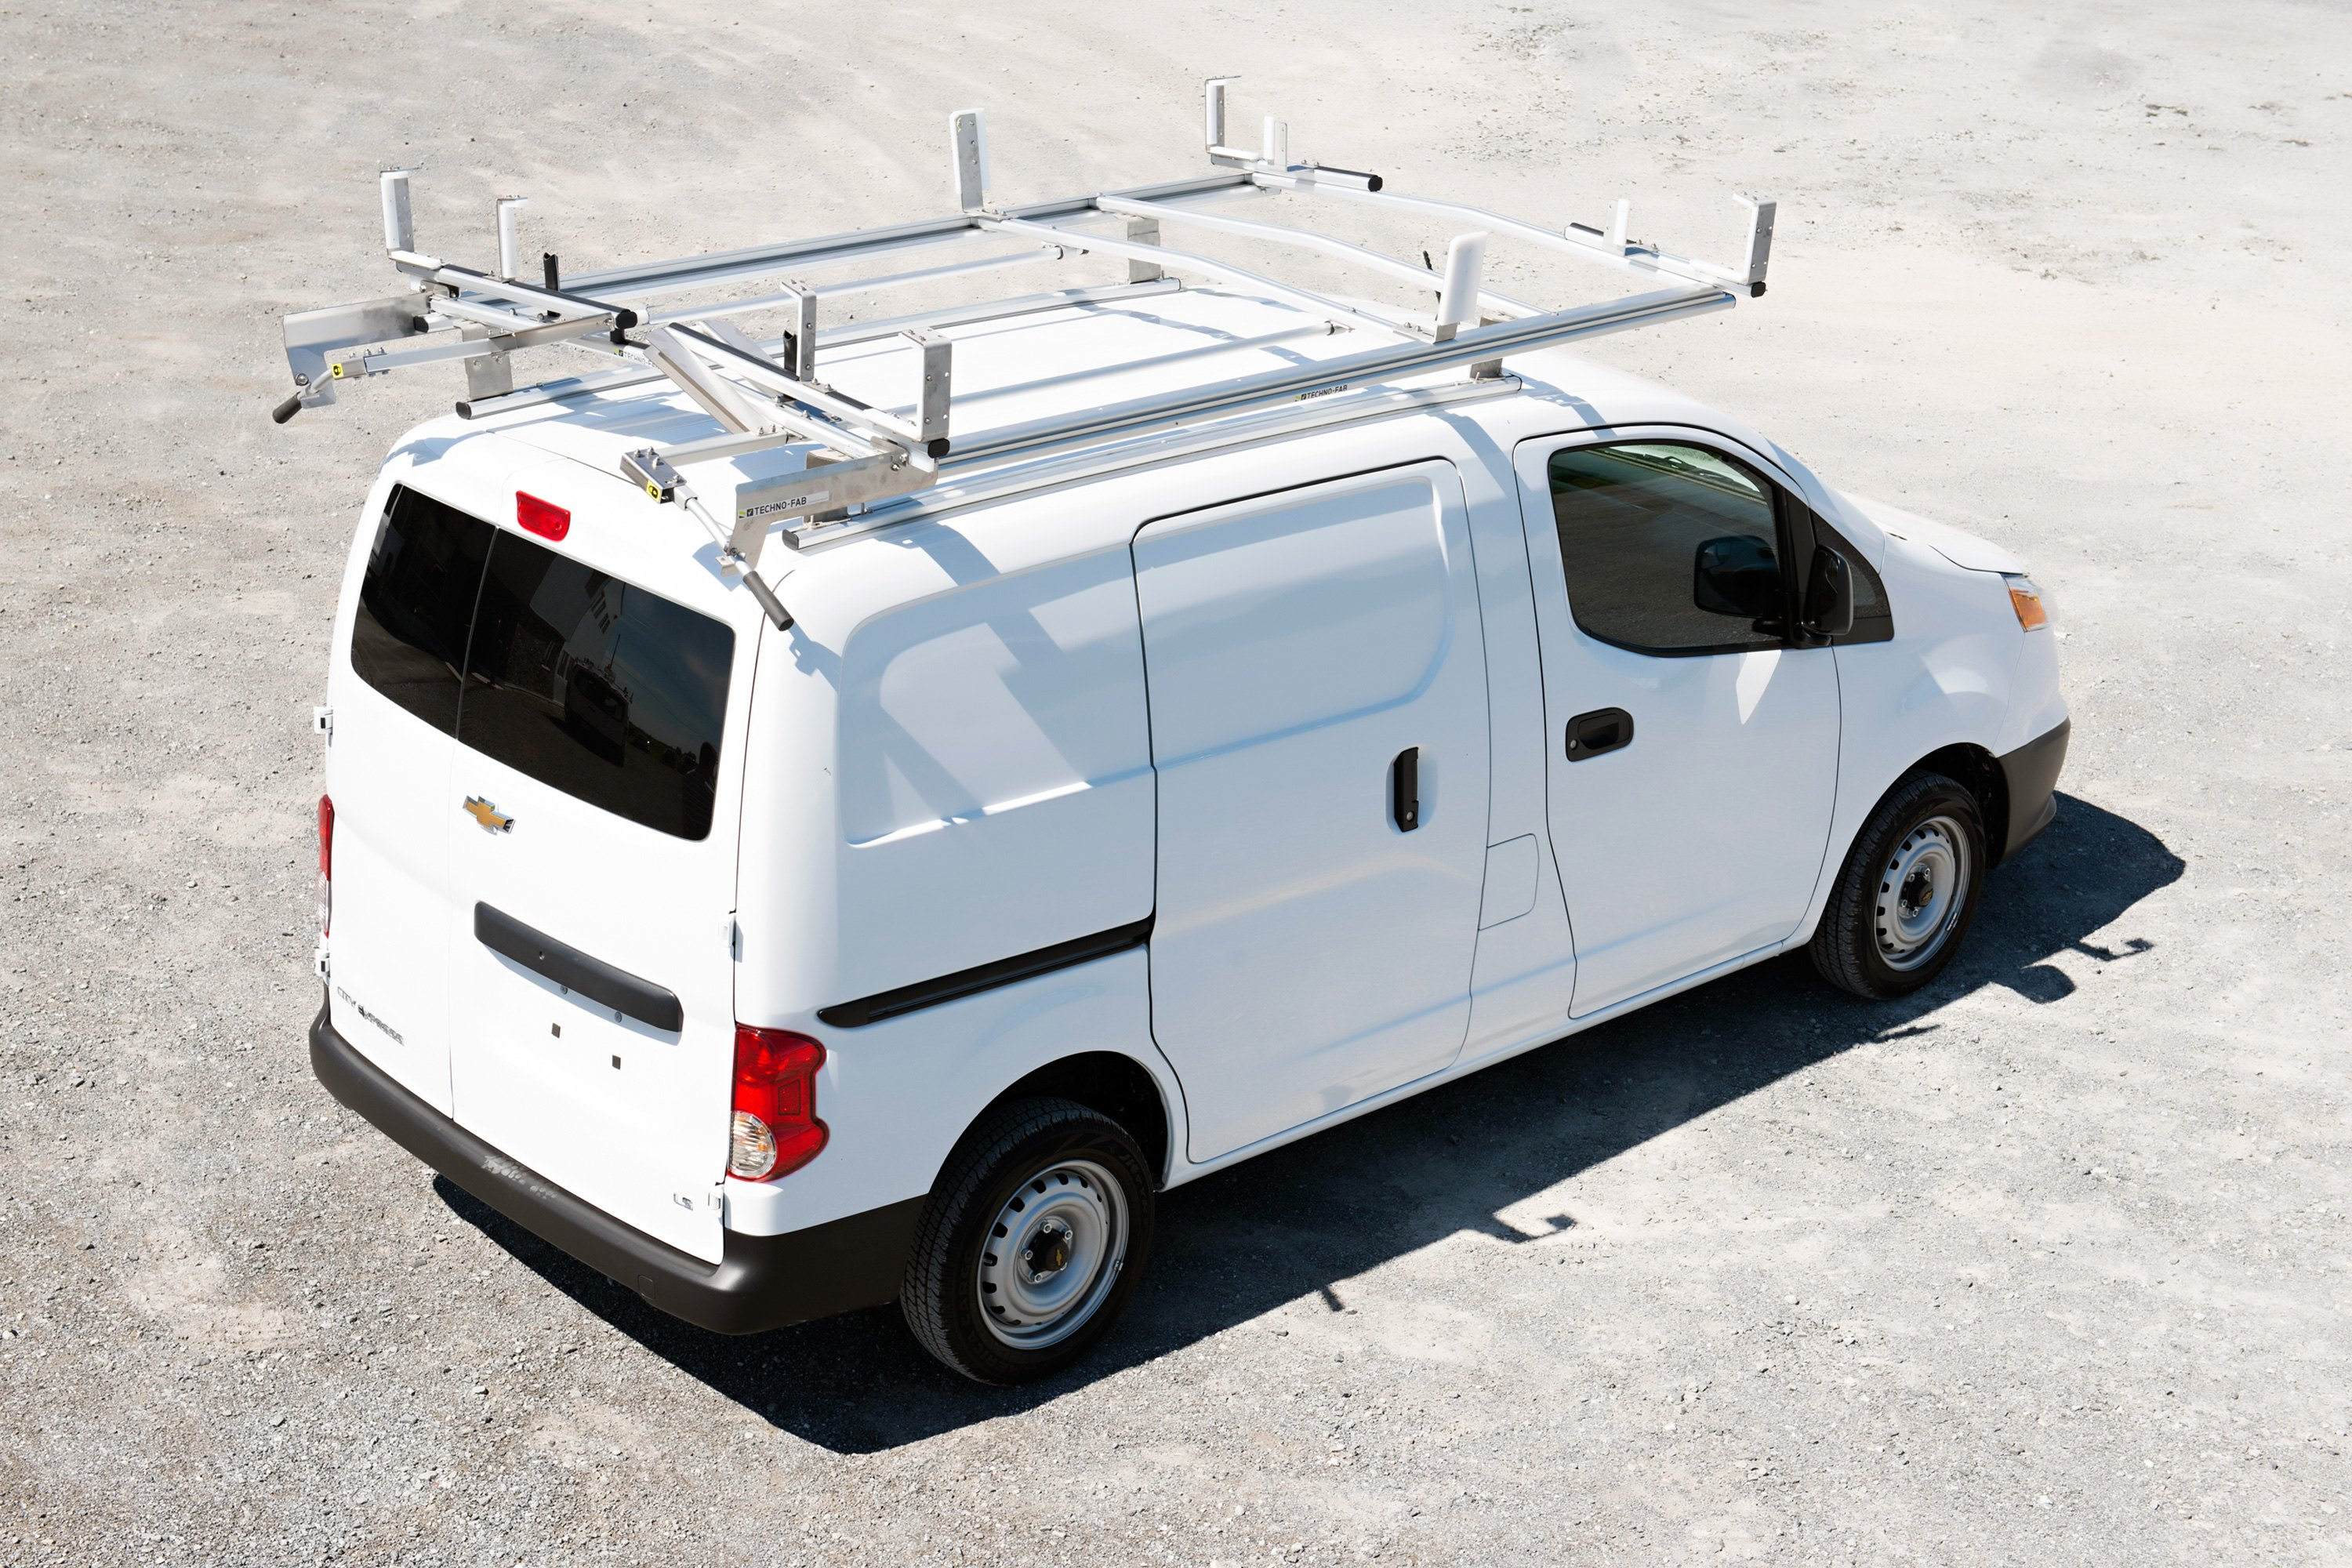 and truck photos rack racks ergorack ladder vans ergonomic trucks for products